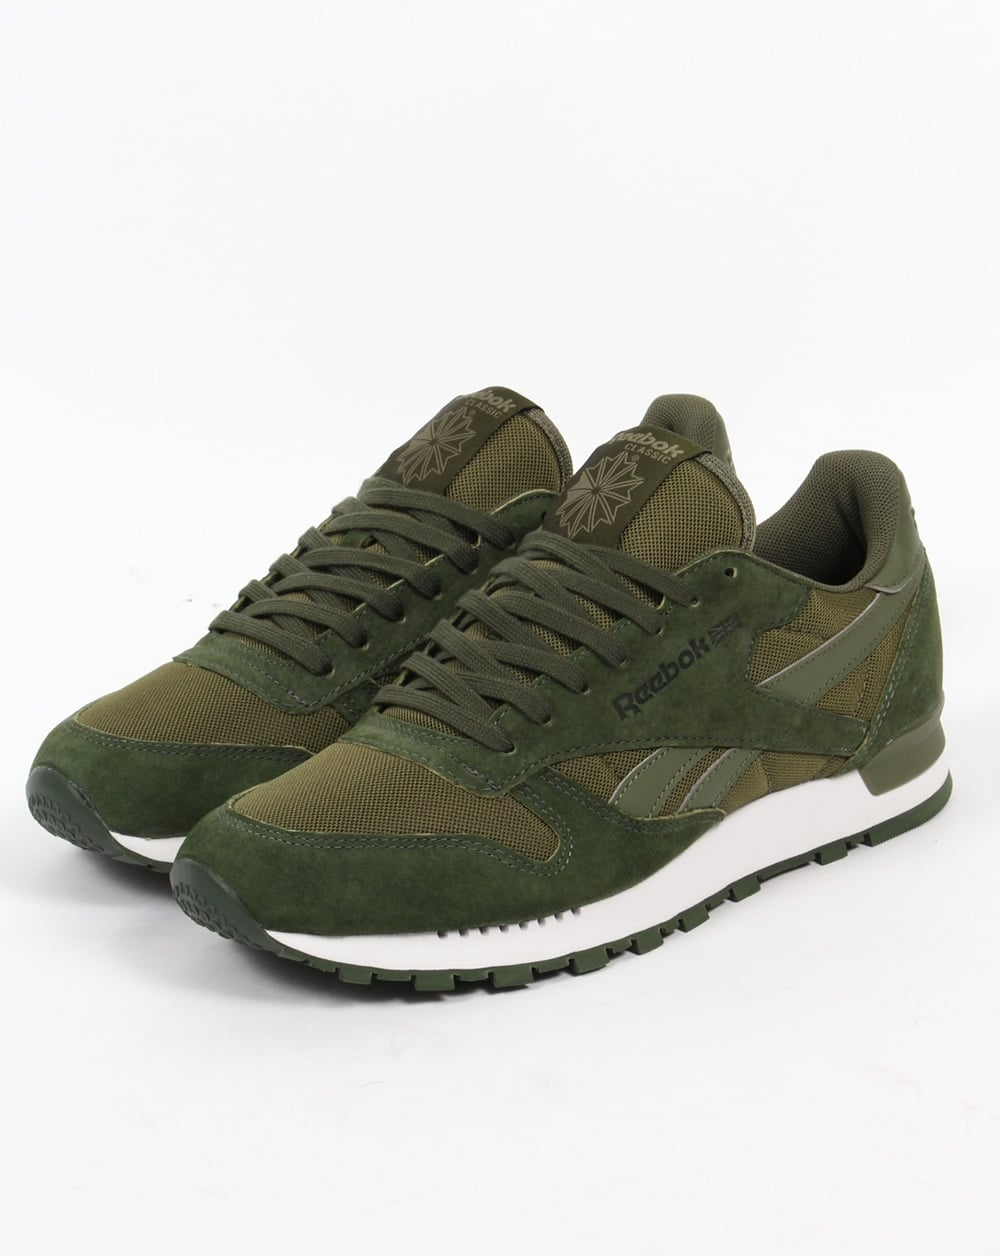 Reebok Classic Leather Clip Trainers Moss Green,80s,shoes,mens